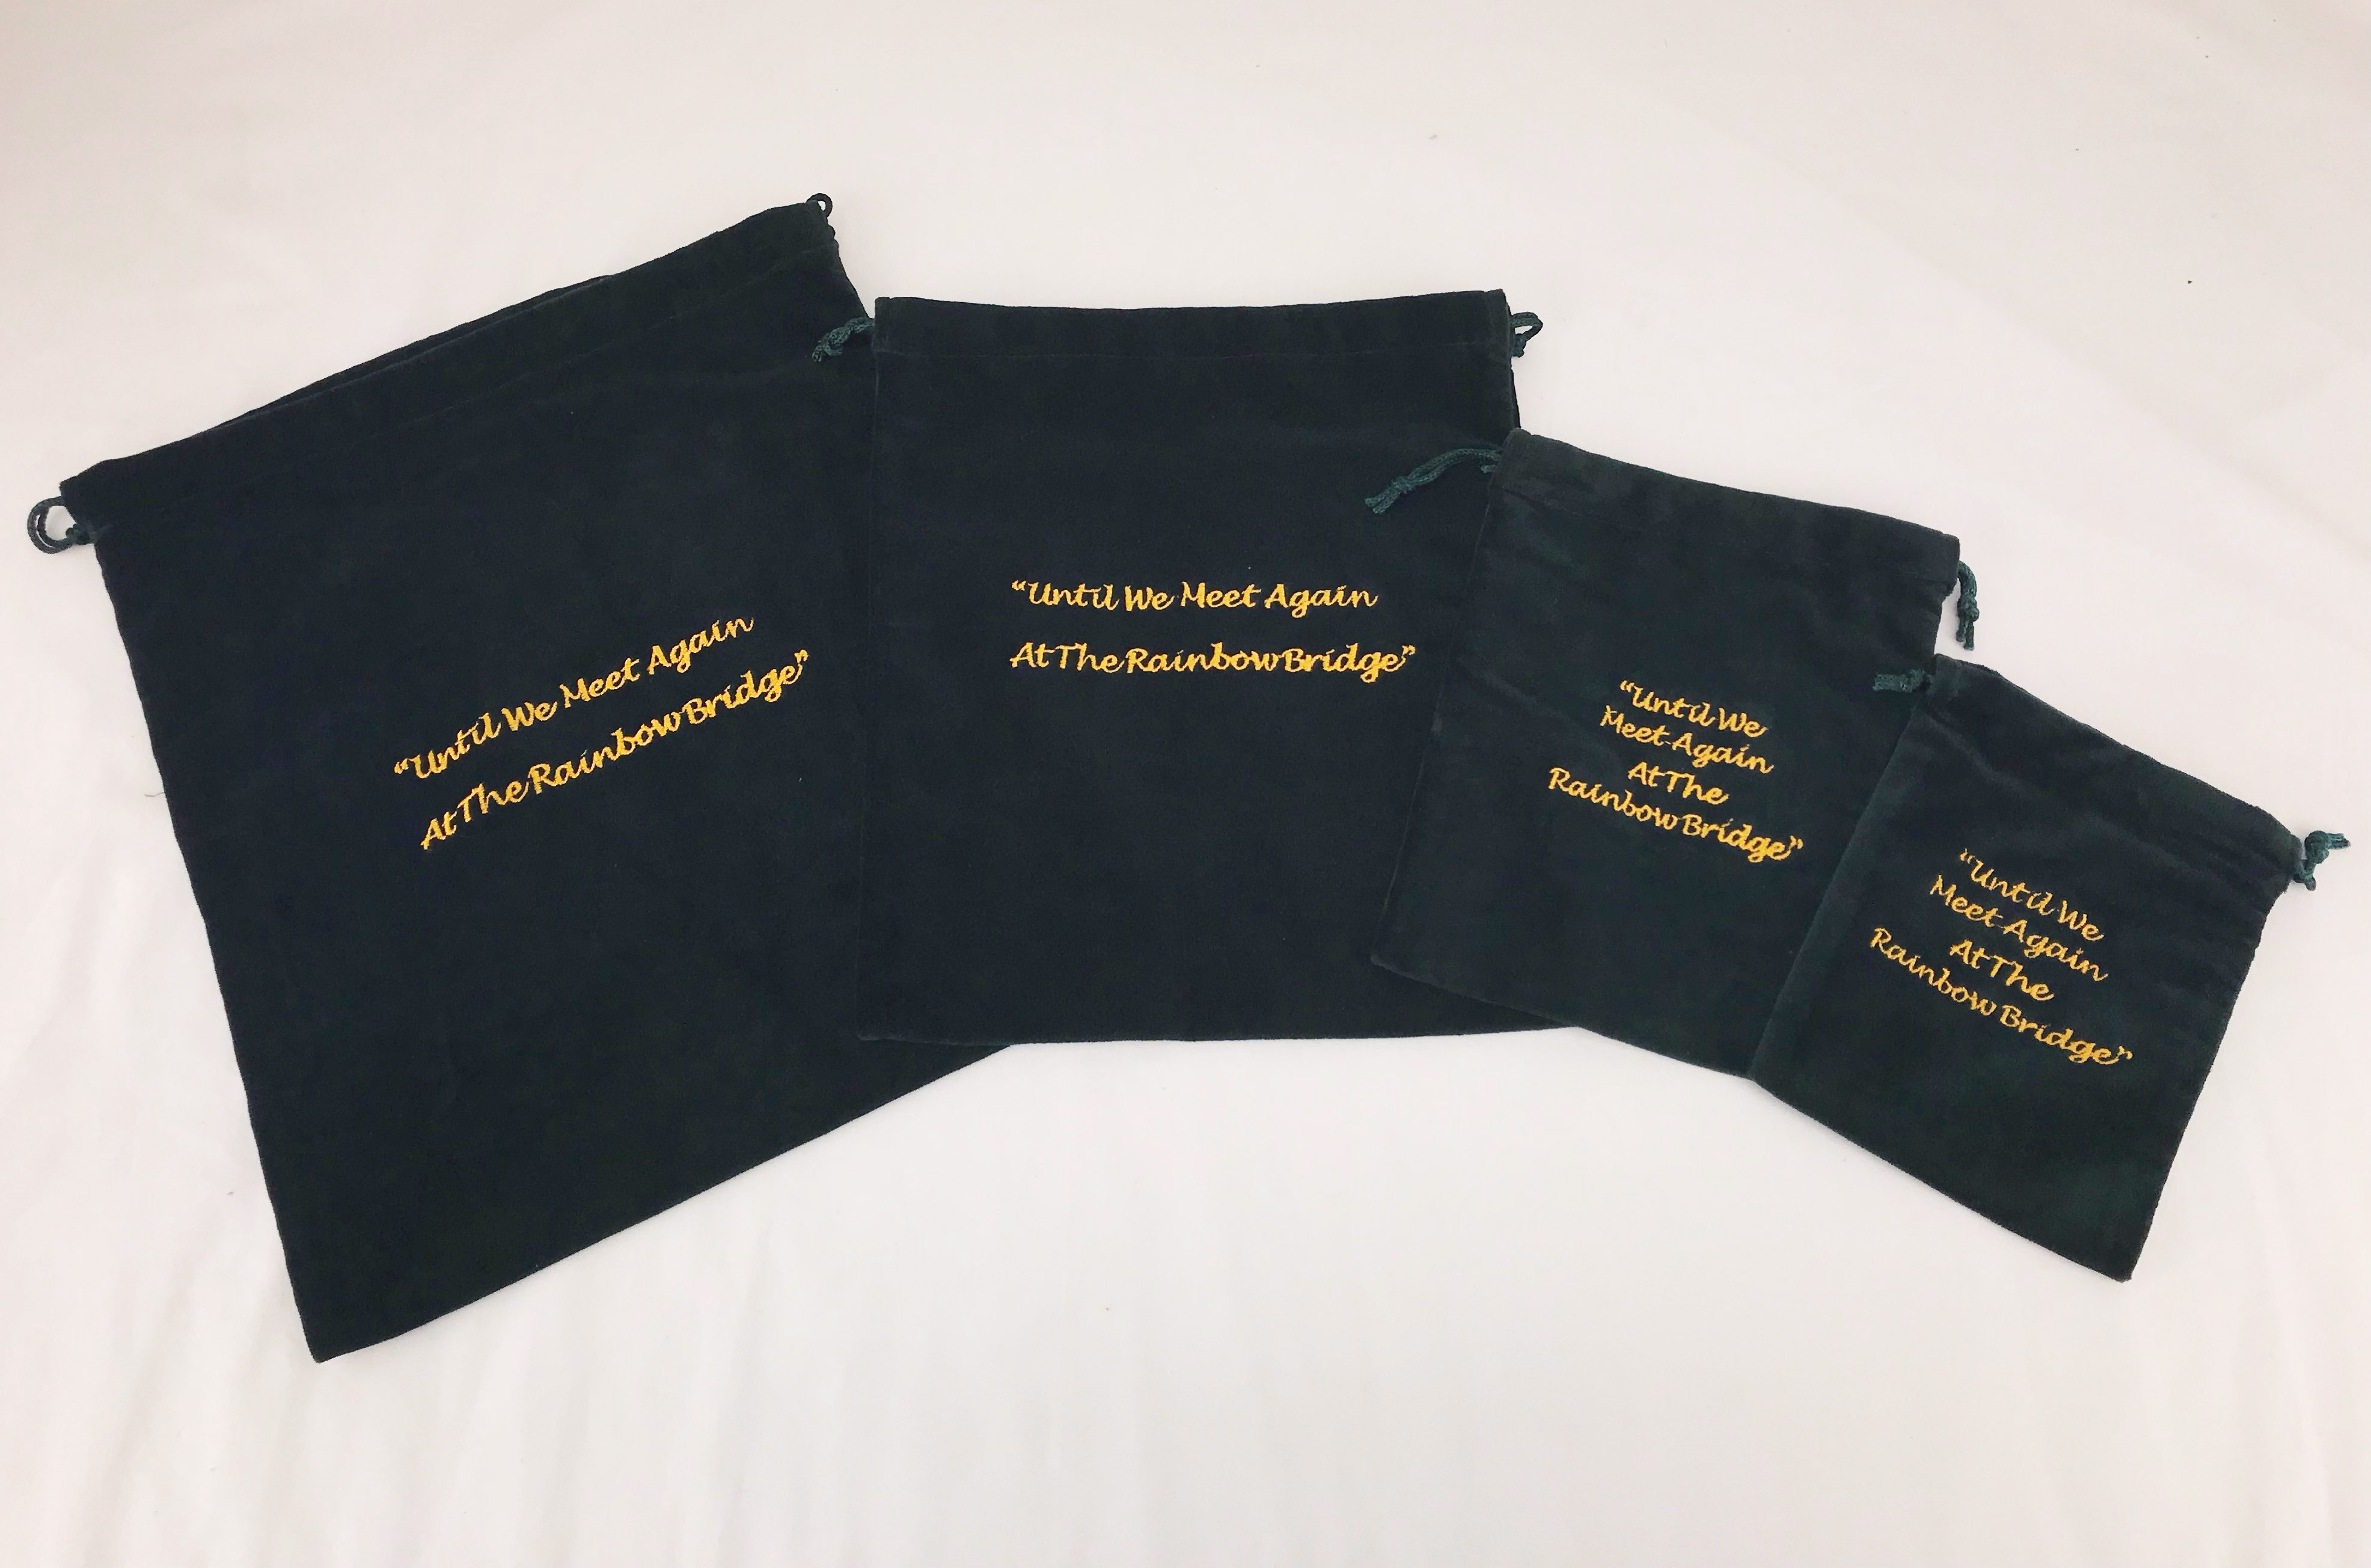 10 x Cremains Bags - Green (Rainbow Bridge Embroidery)